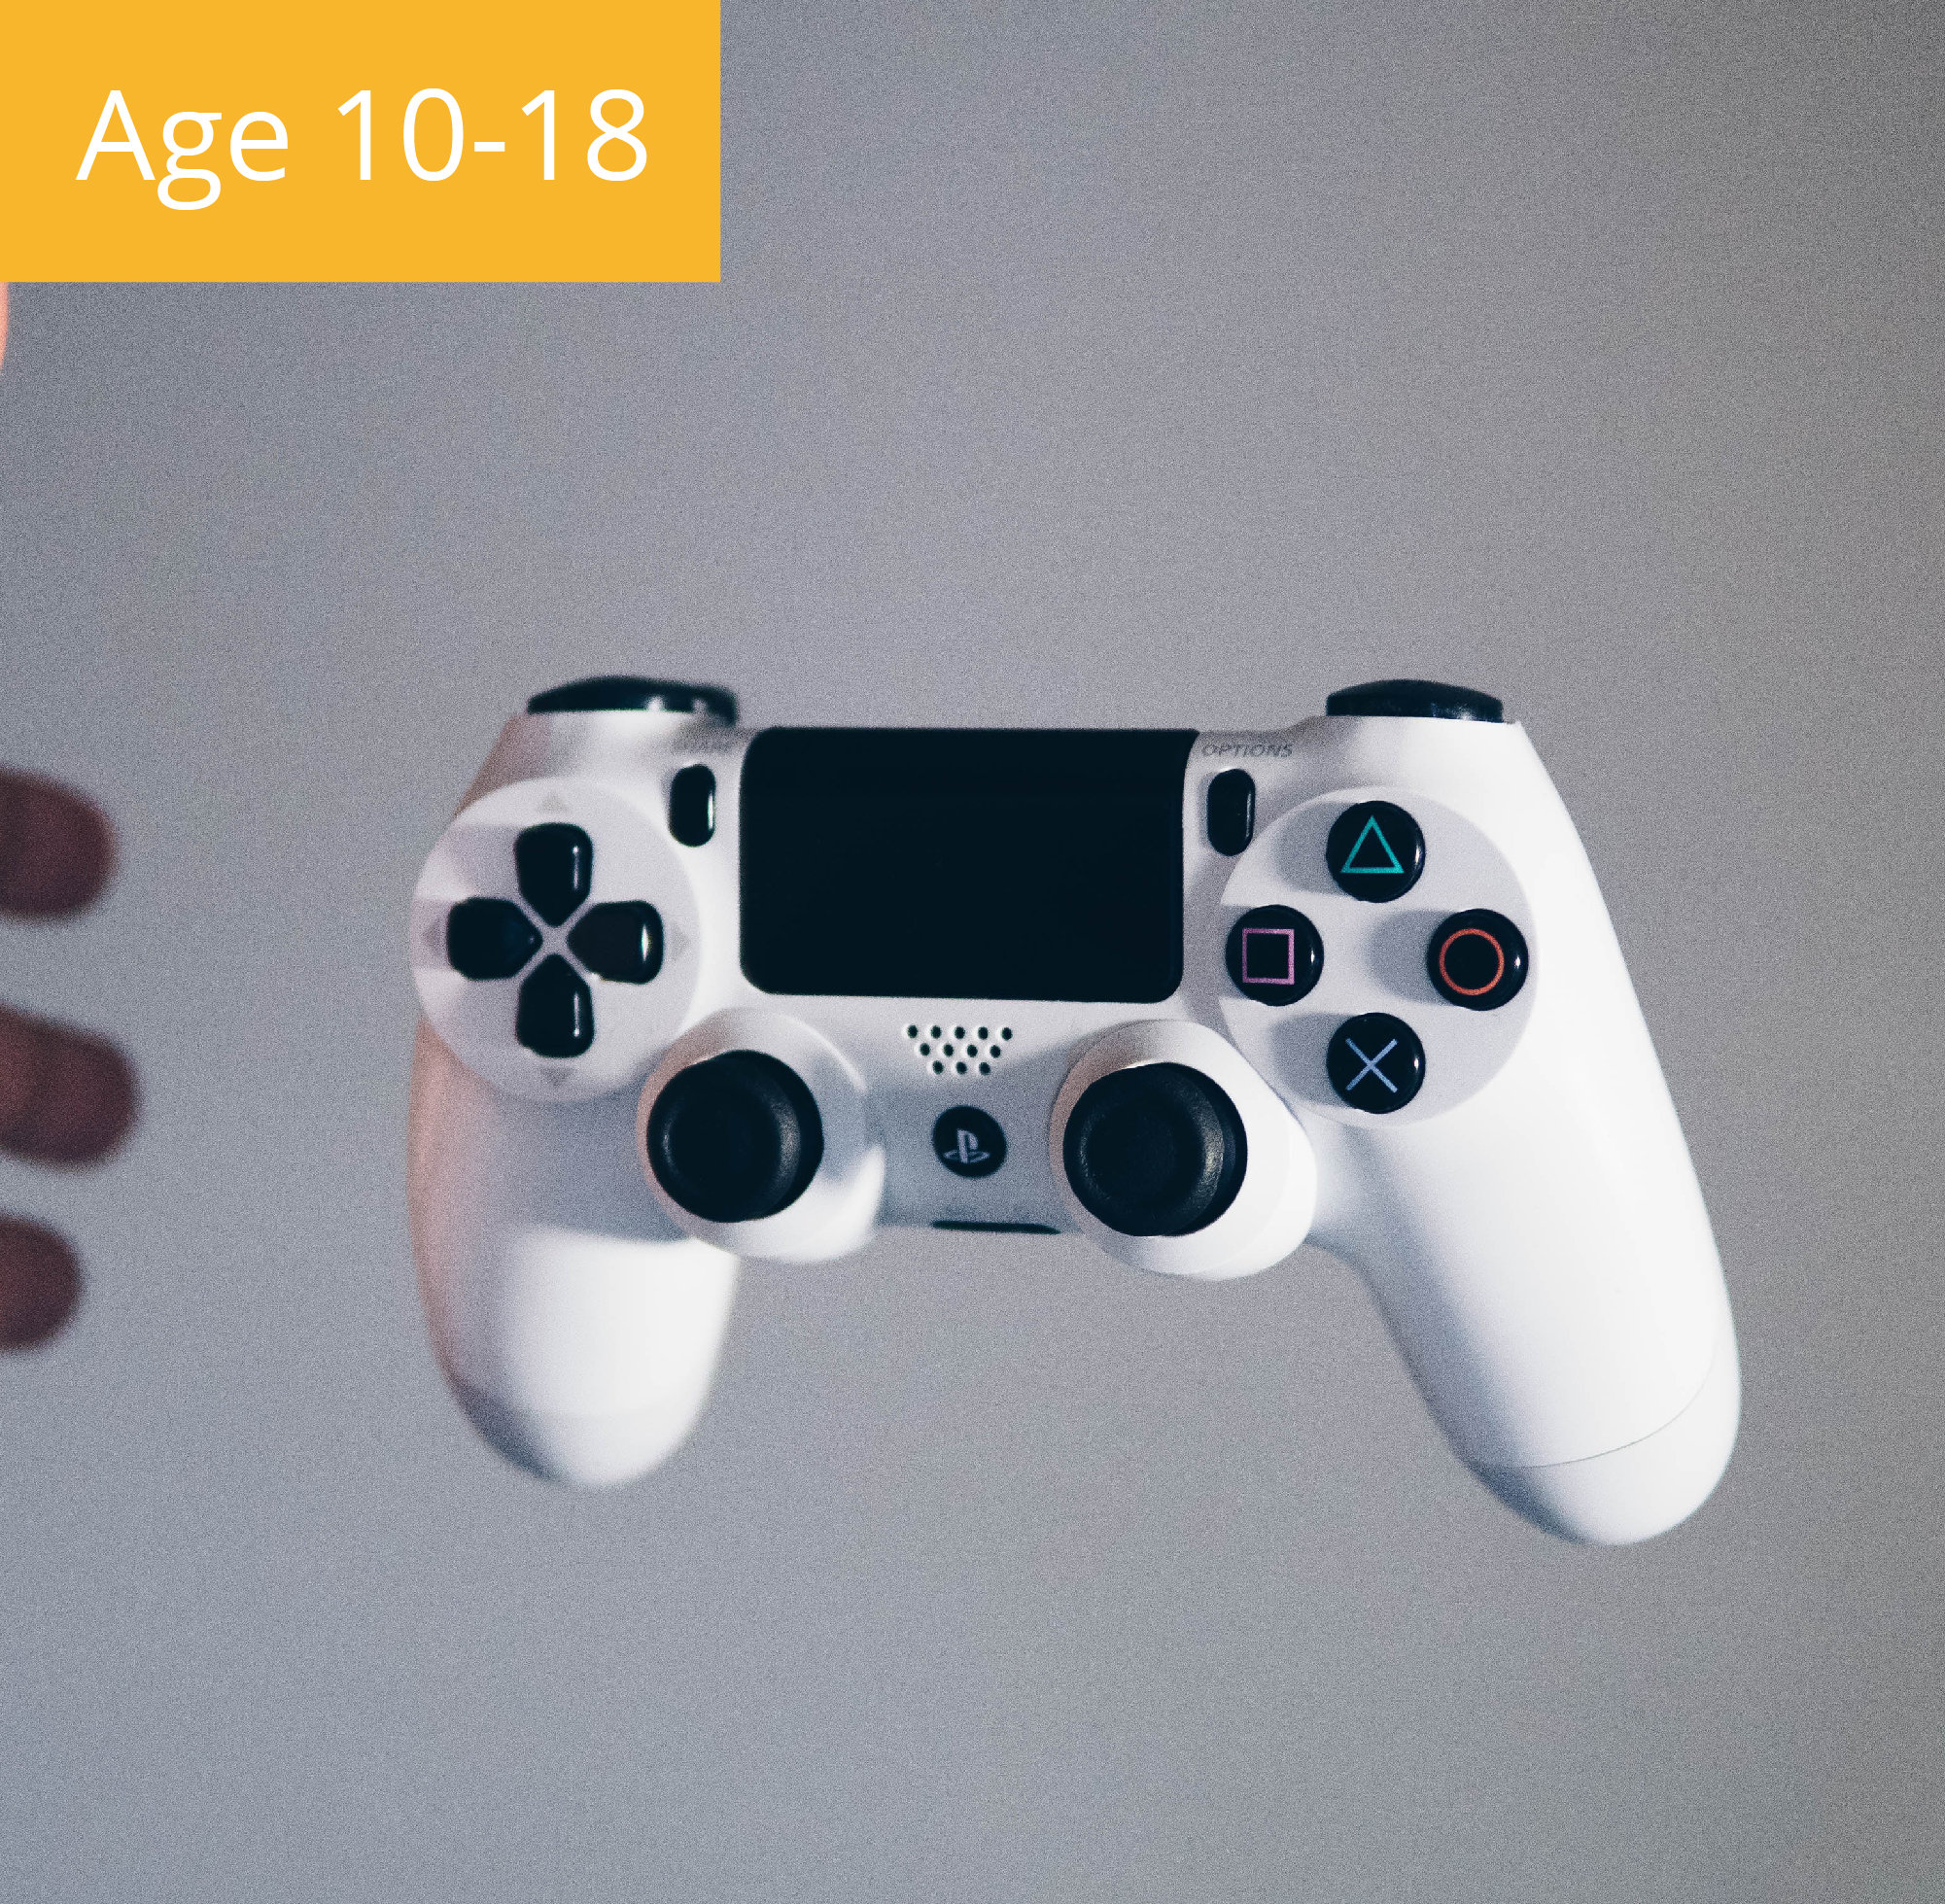 Add Gamepad Controls To Roblox Game Game Development Roblox Summer Camp Age 10 18 Ivy Seed Academy